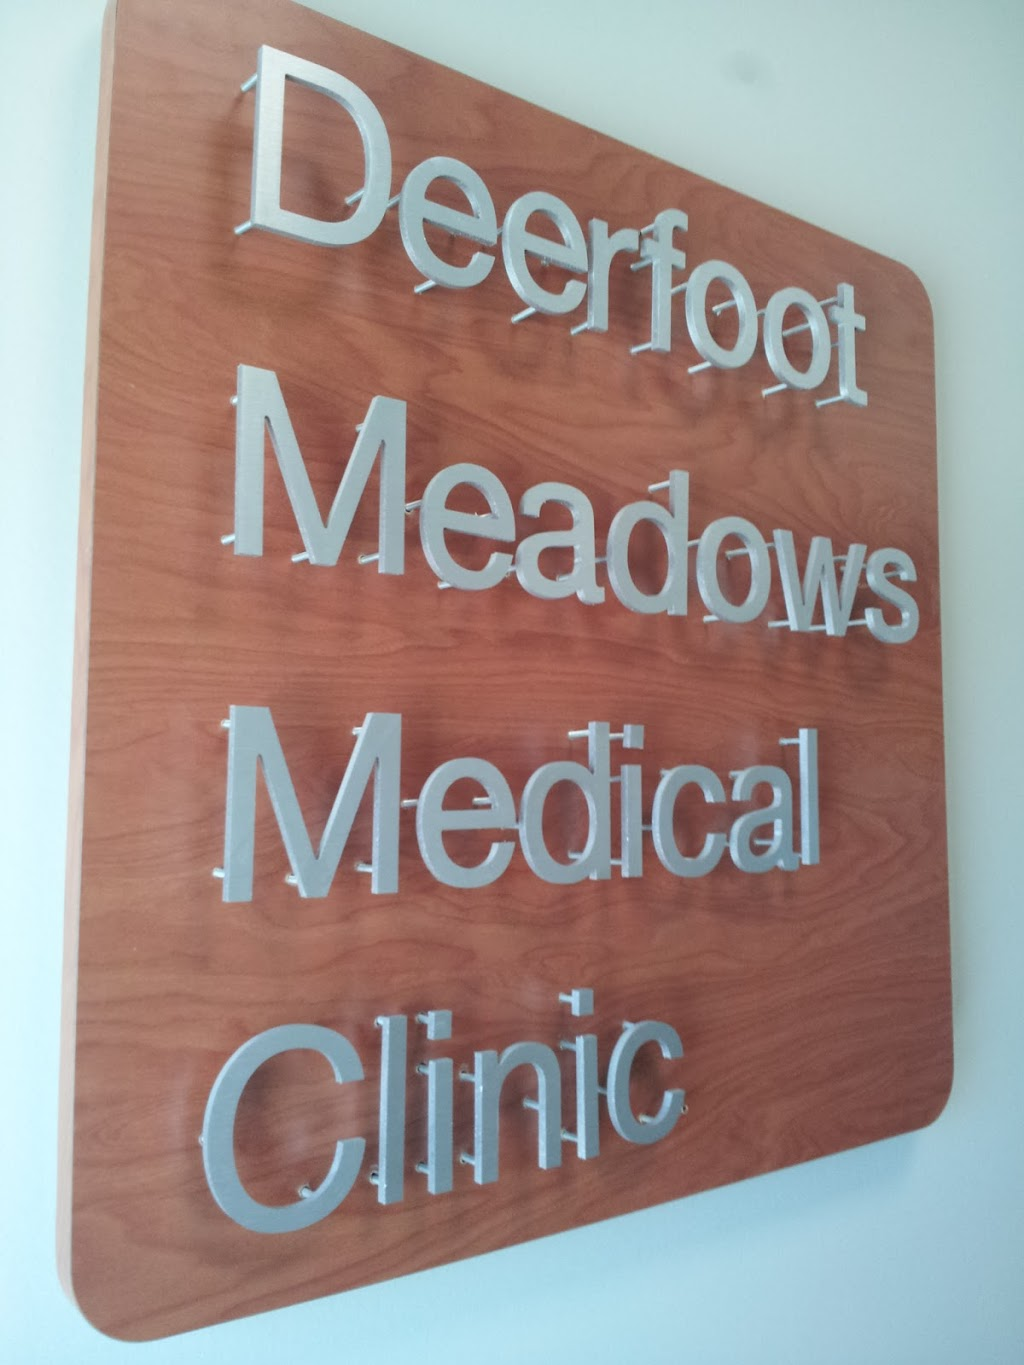 Deerfoot Meadows Medical Clinic | doctor | 7640 Fairmount Dr SE, Calgary, AB T2H 0X9, Canada | 4032512690 OR +1 403-251-2690